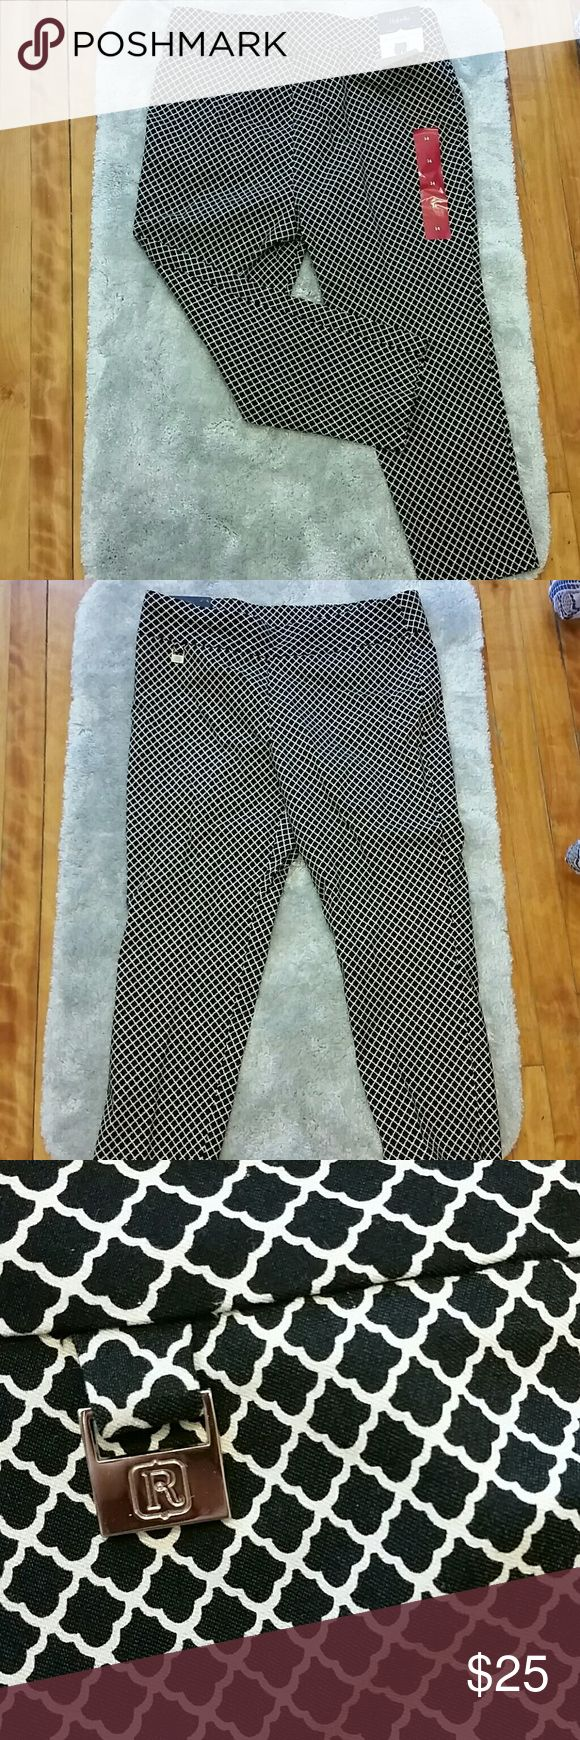 NWT Rafaella Capri Size 14 Rafaella comfort capri is guaranteed to fit your shape and move with your body. It has a expandable waistband. They are a dark navy blue and has a very pretty design throughout. Wear to the office or a casual dress. Rafaella Pants Capris